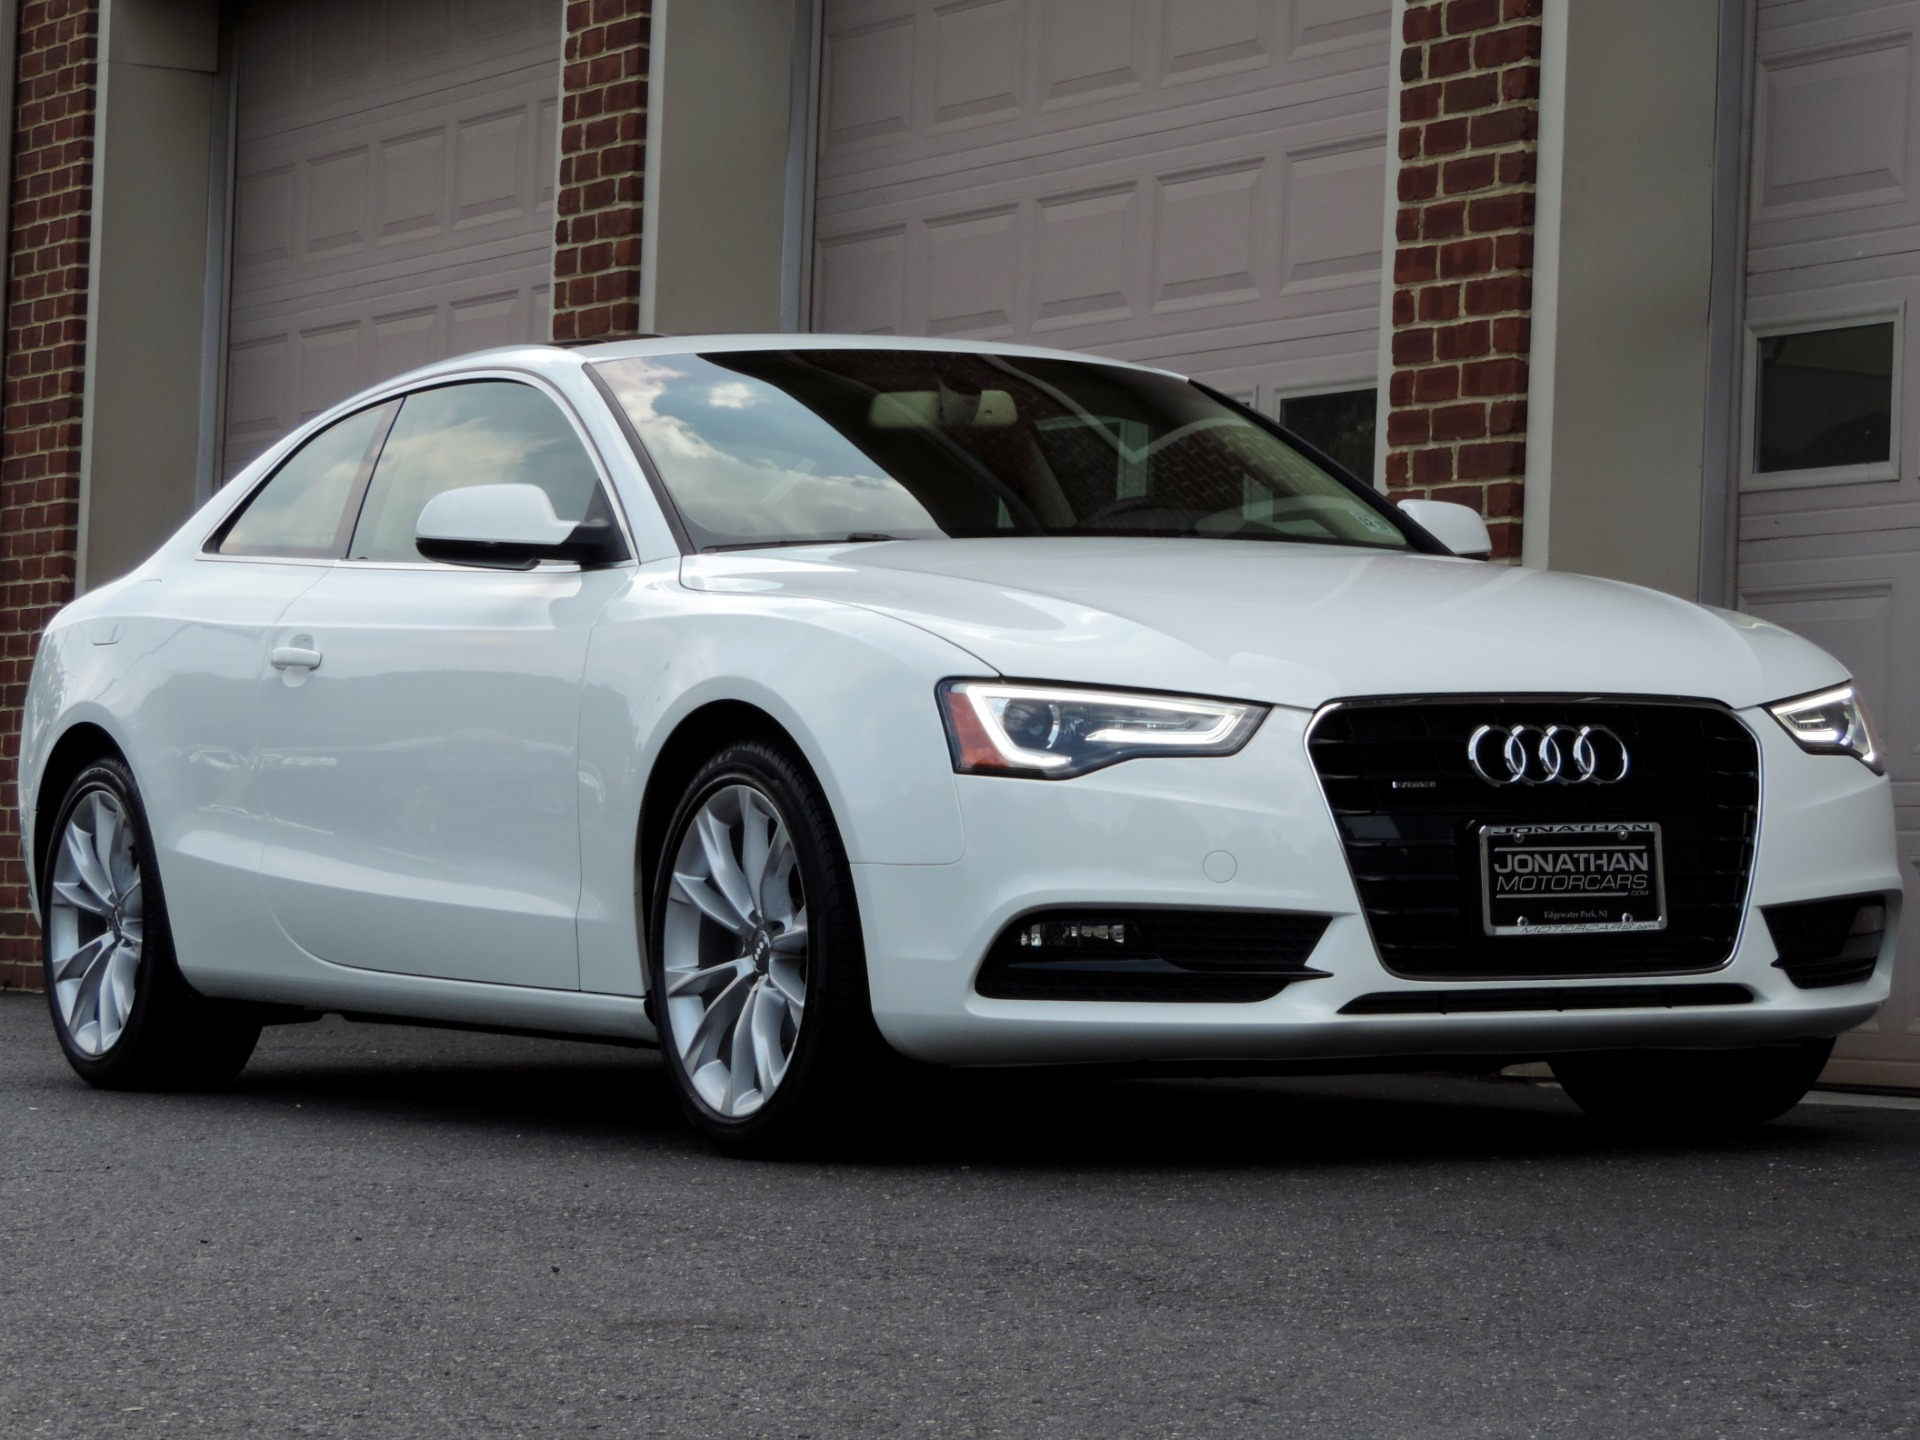 2013 Audi A5 2 0t Quattro Prestige Stock 043392 For Sale